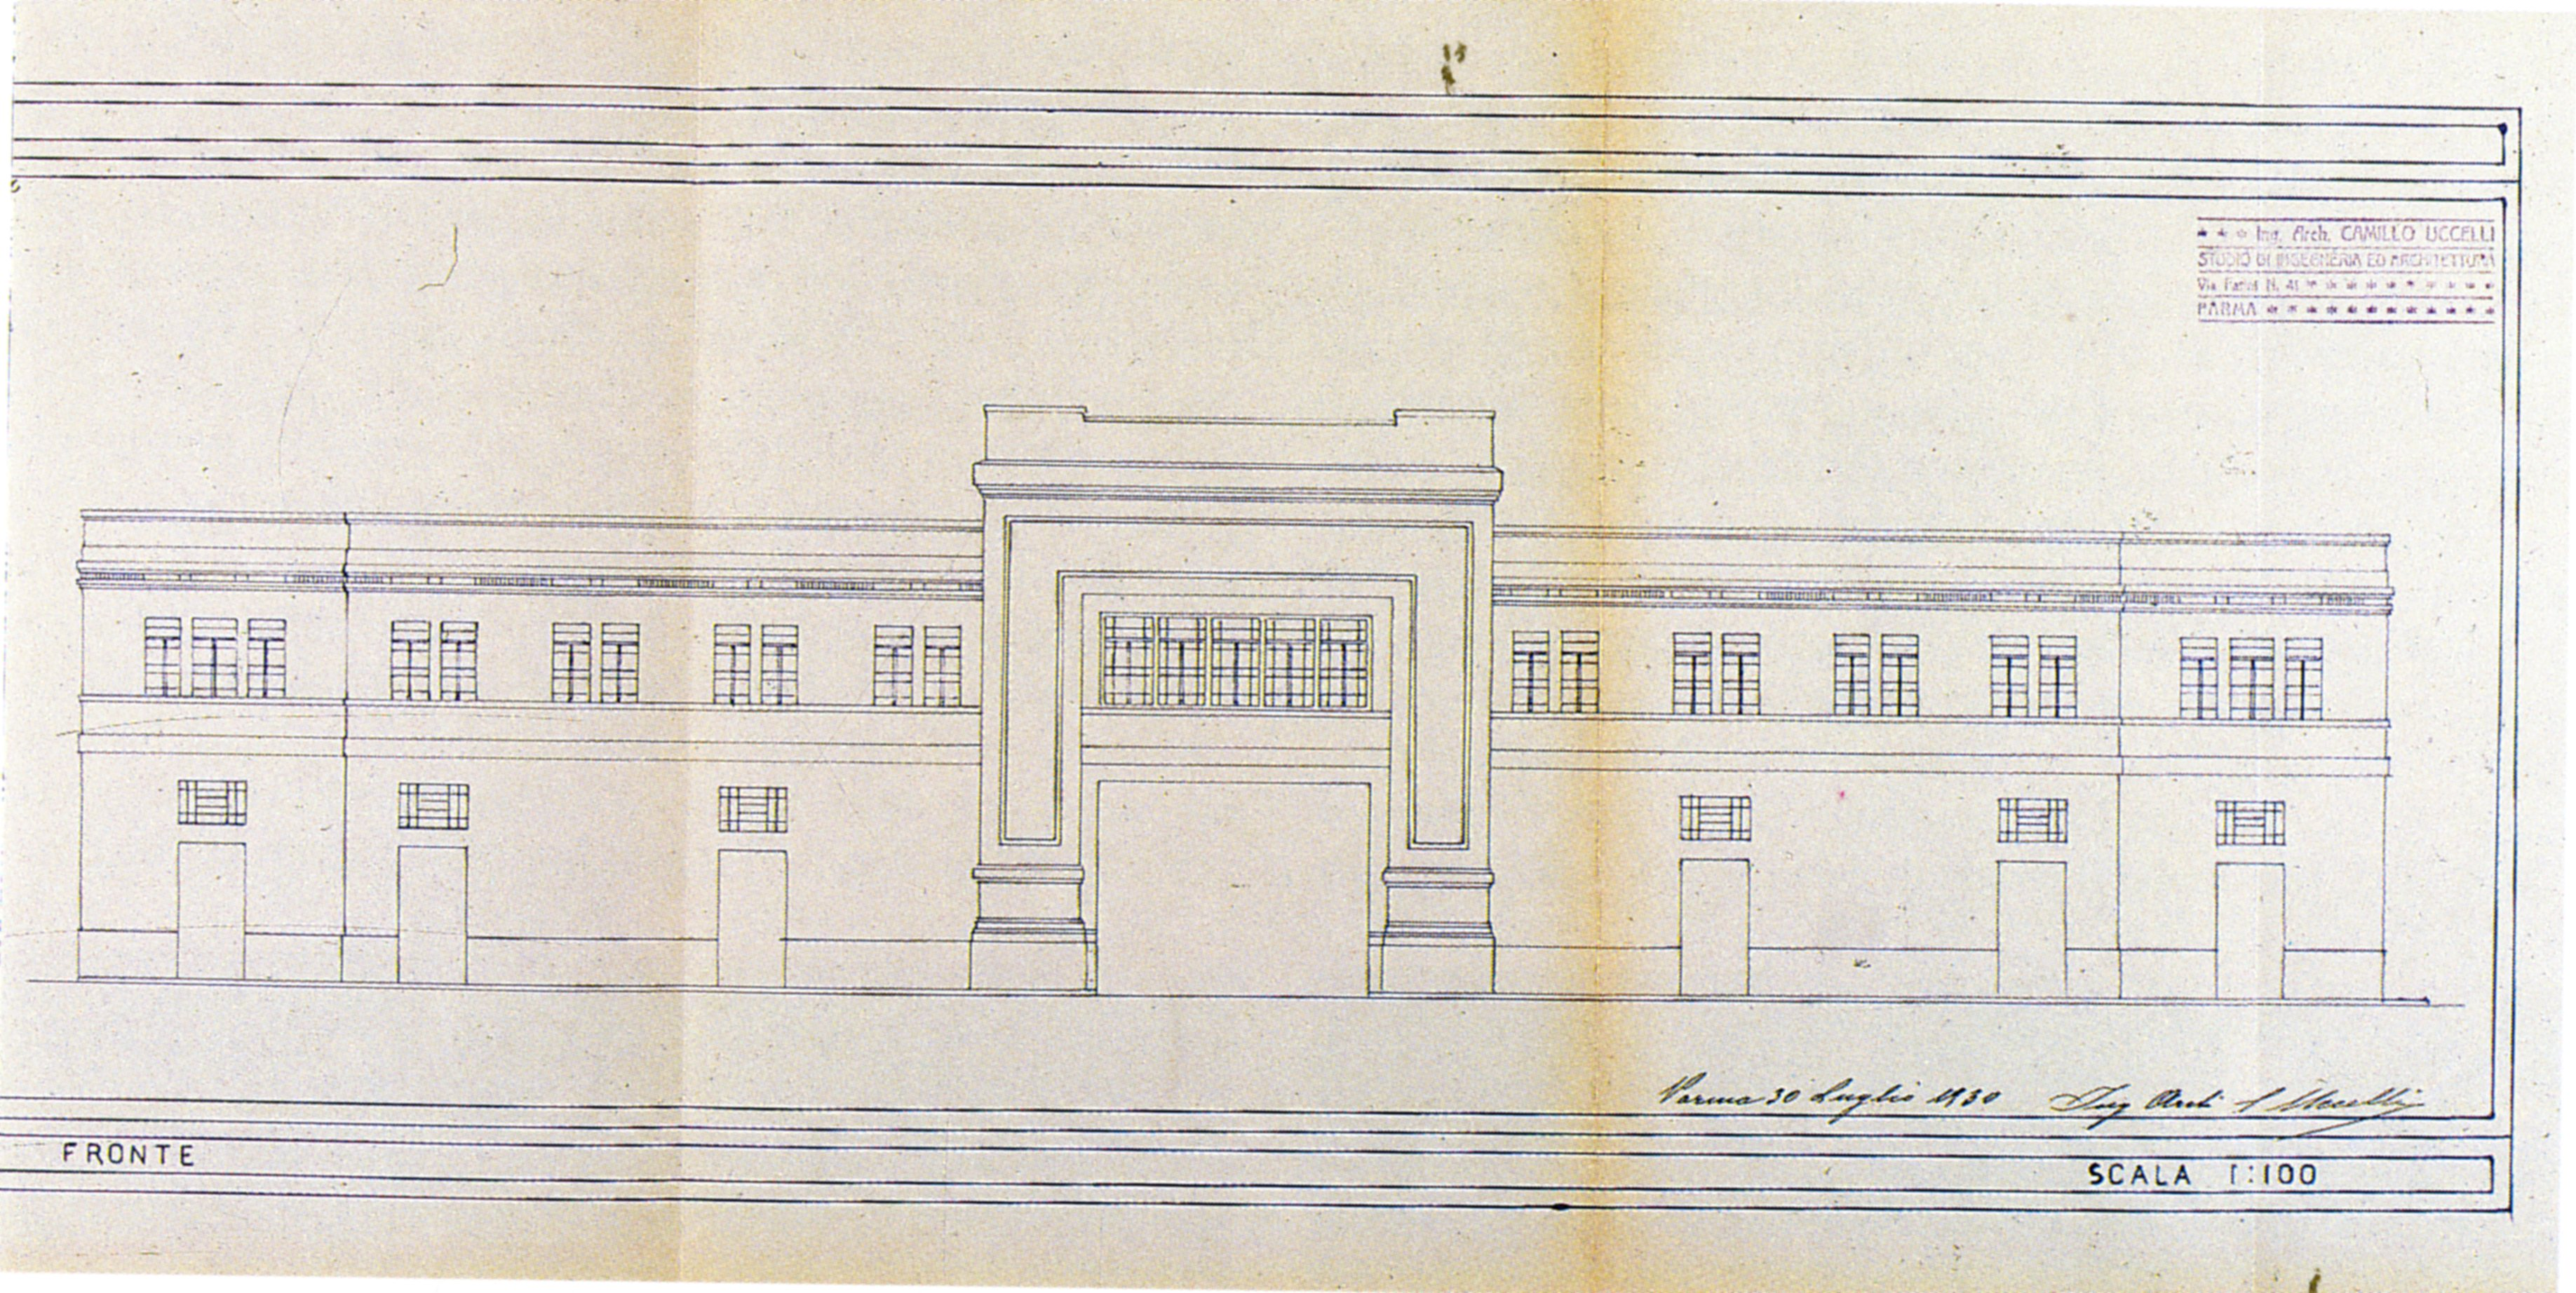 Camillo Uccelli, Design for the Bakery, 1930: west perspective design [ASCPR, building licenses, 1922/293].